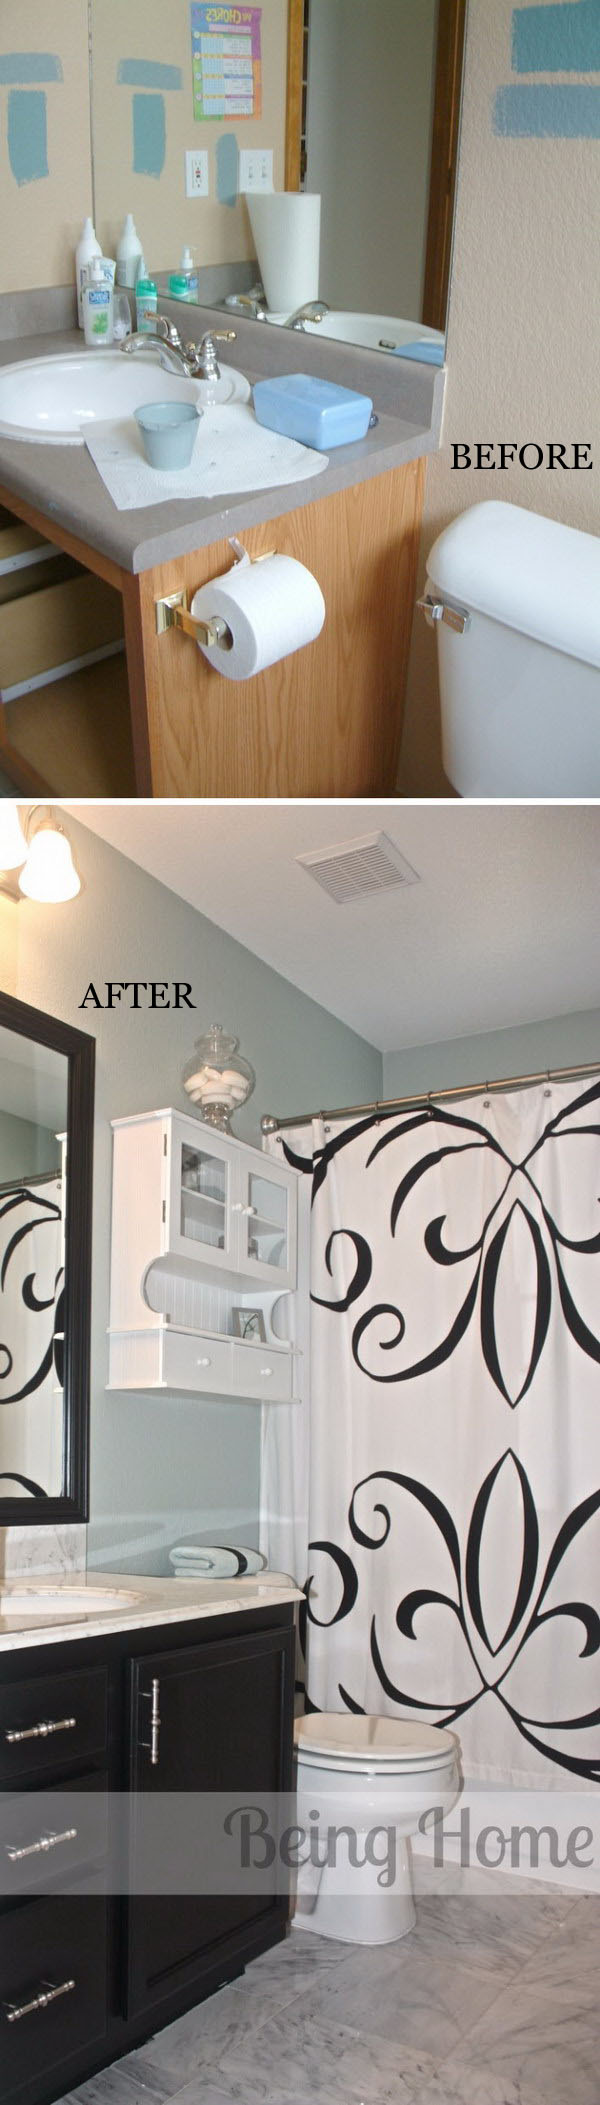 Bathroom Makeover With Before and After.